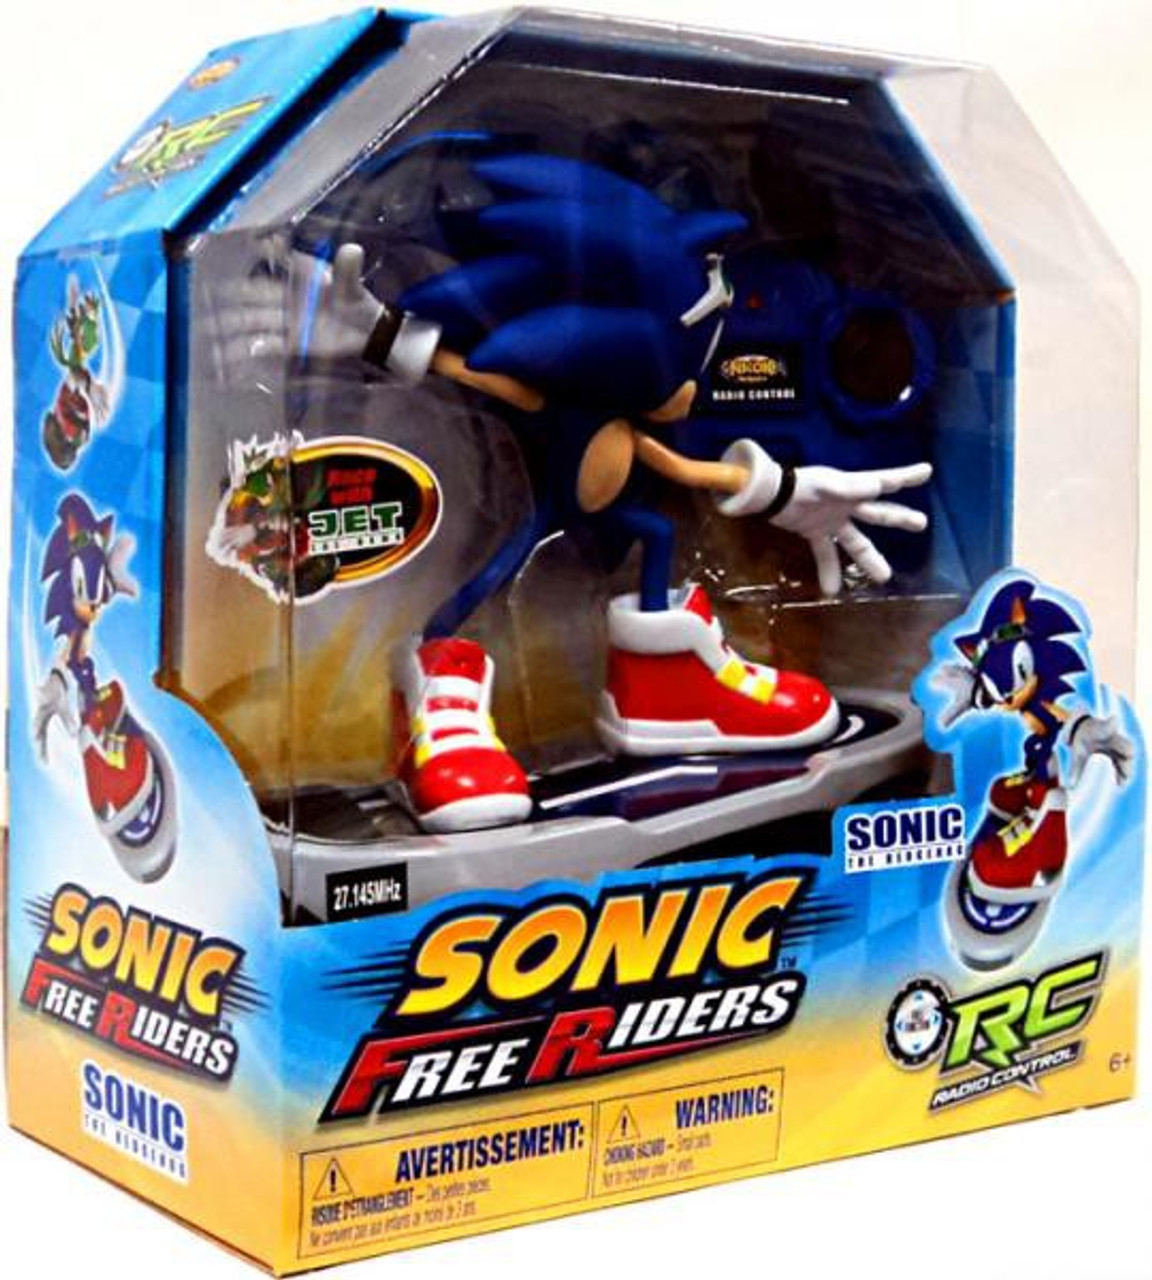 Free Riders Sonic the Hedgehog R/C Figure